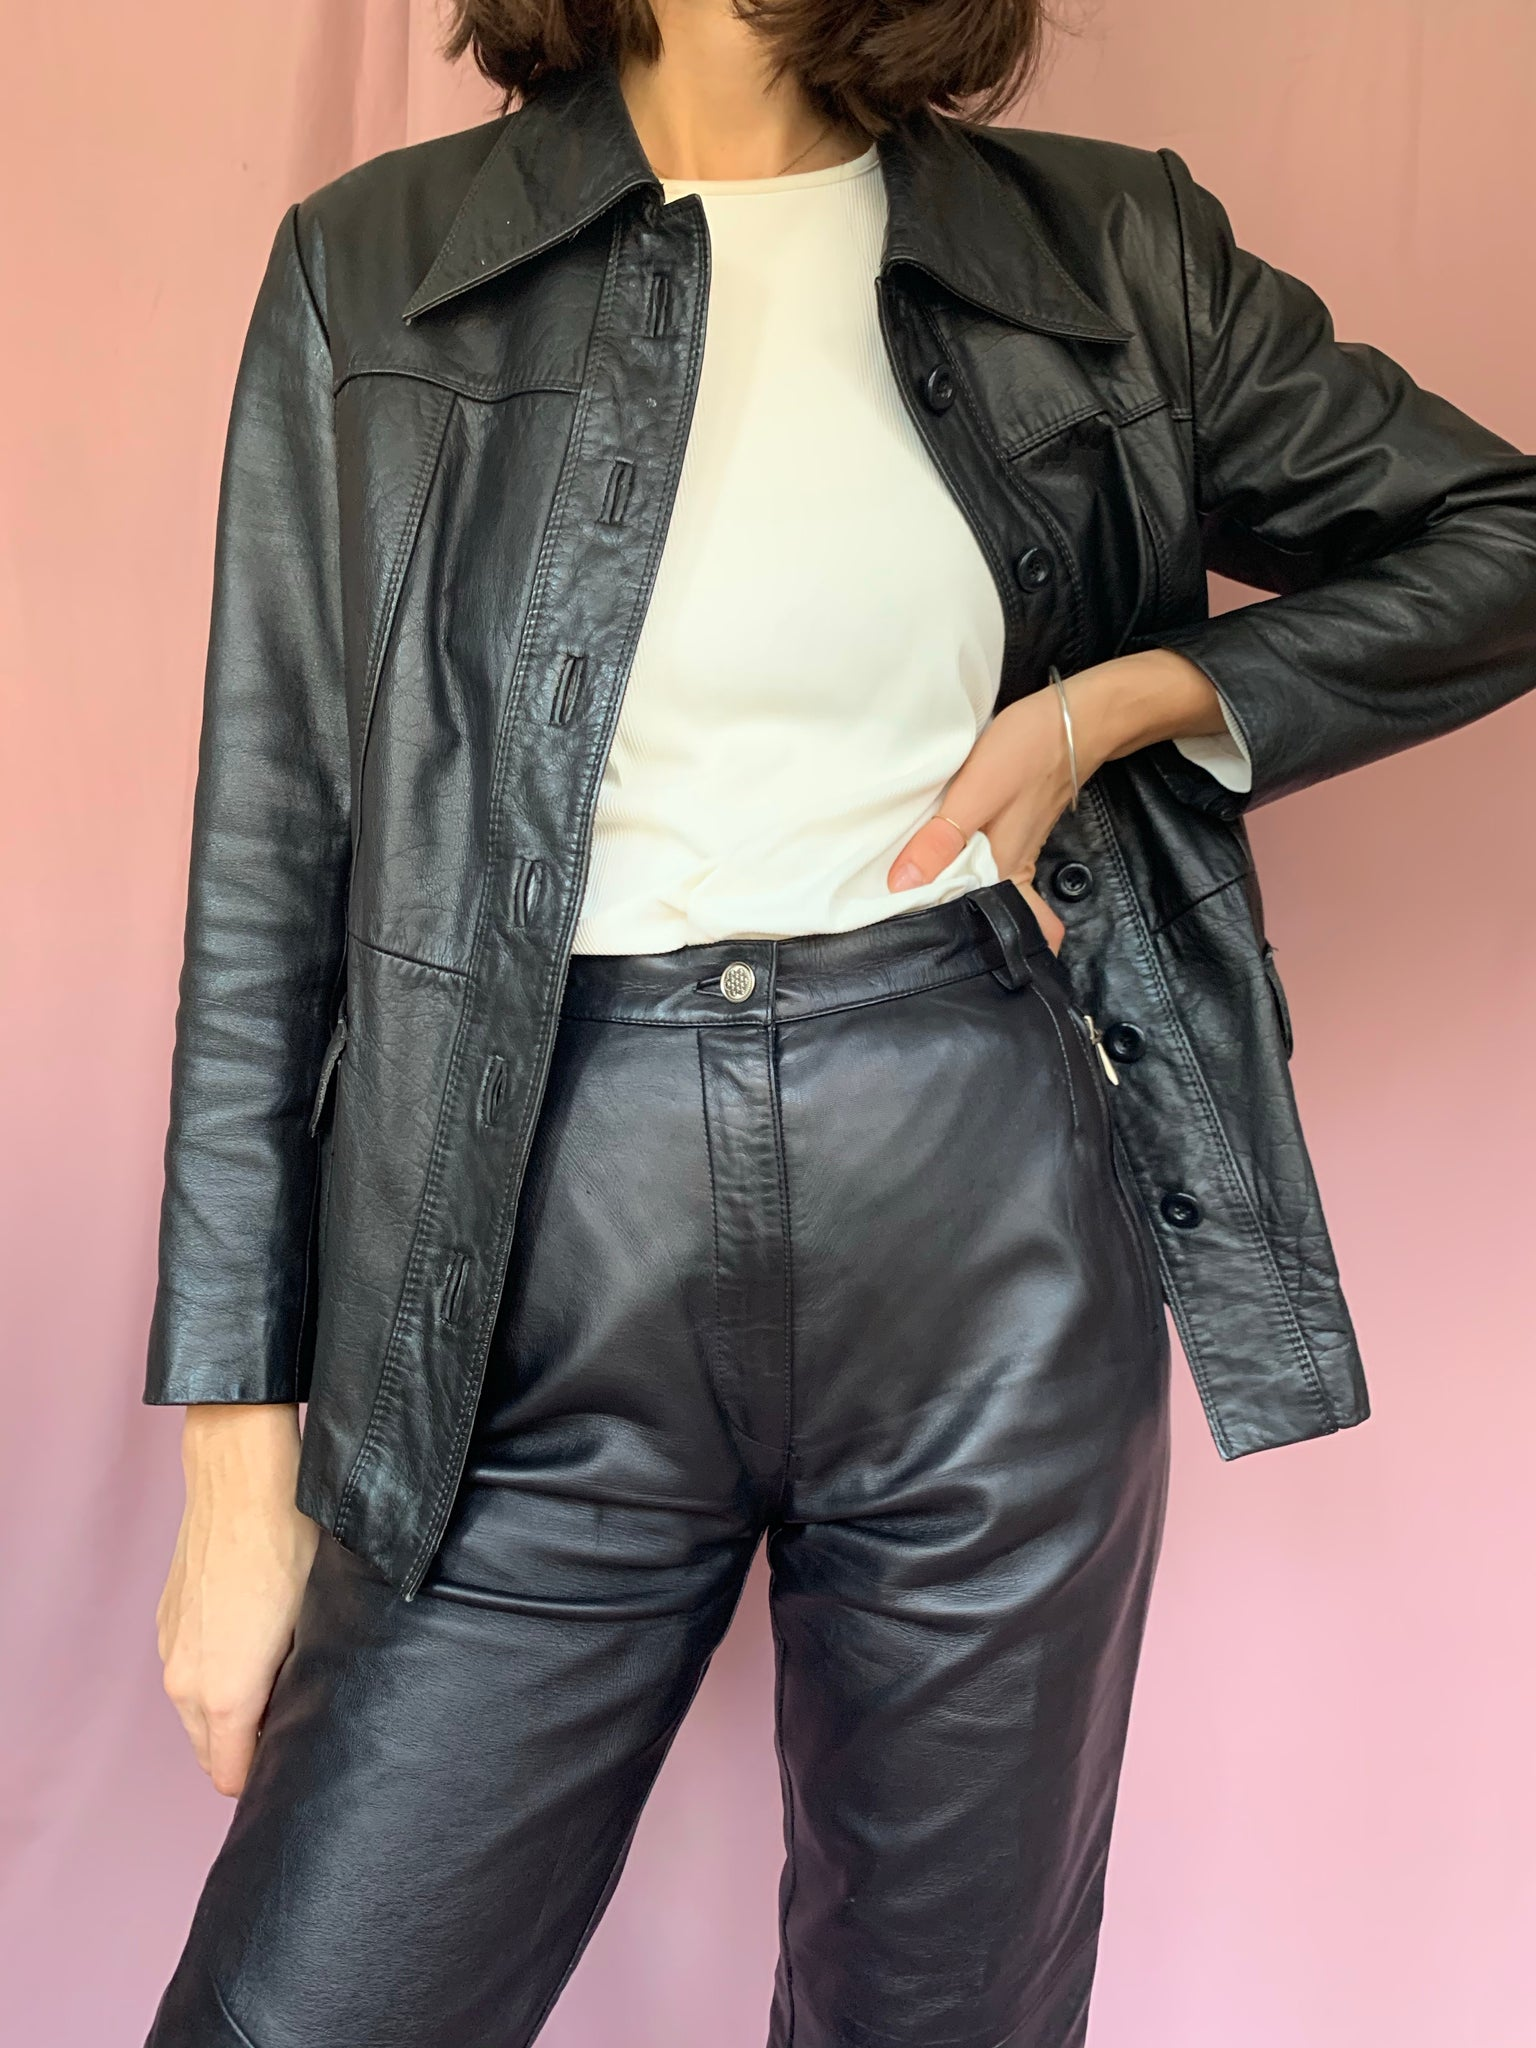 Black leather jacket with belt